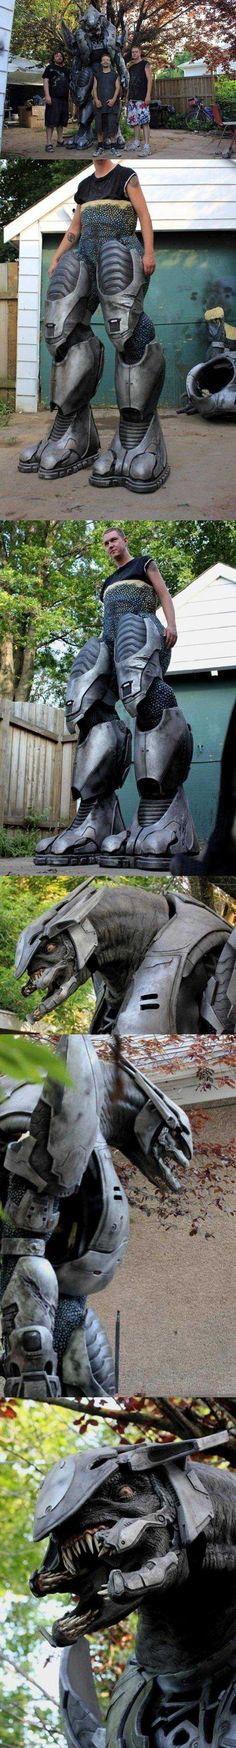 A Filipino man makes and sells these DIY action figures out of worn out flip flops. - Imgur